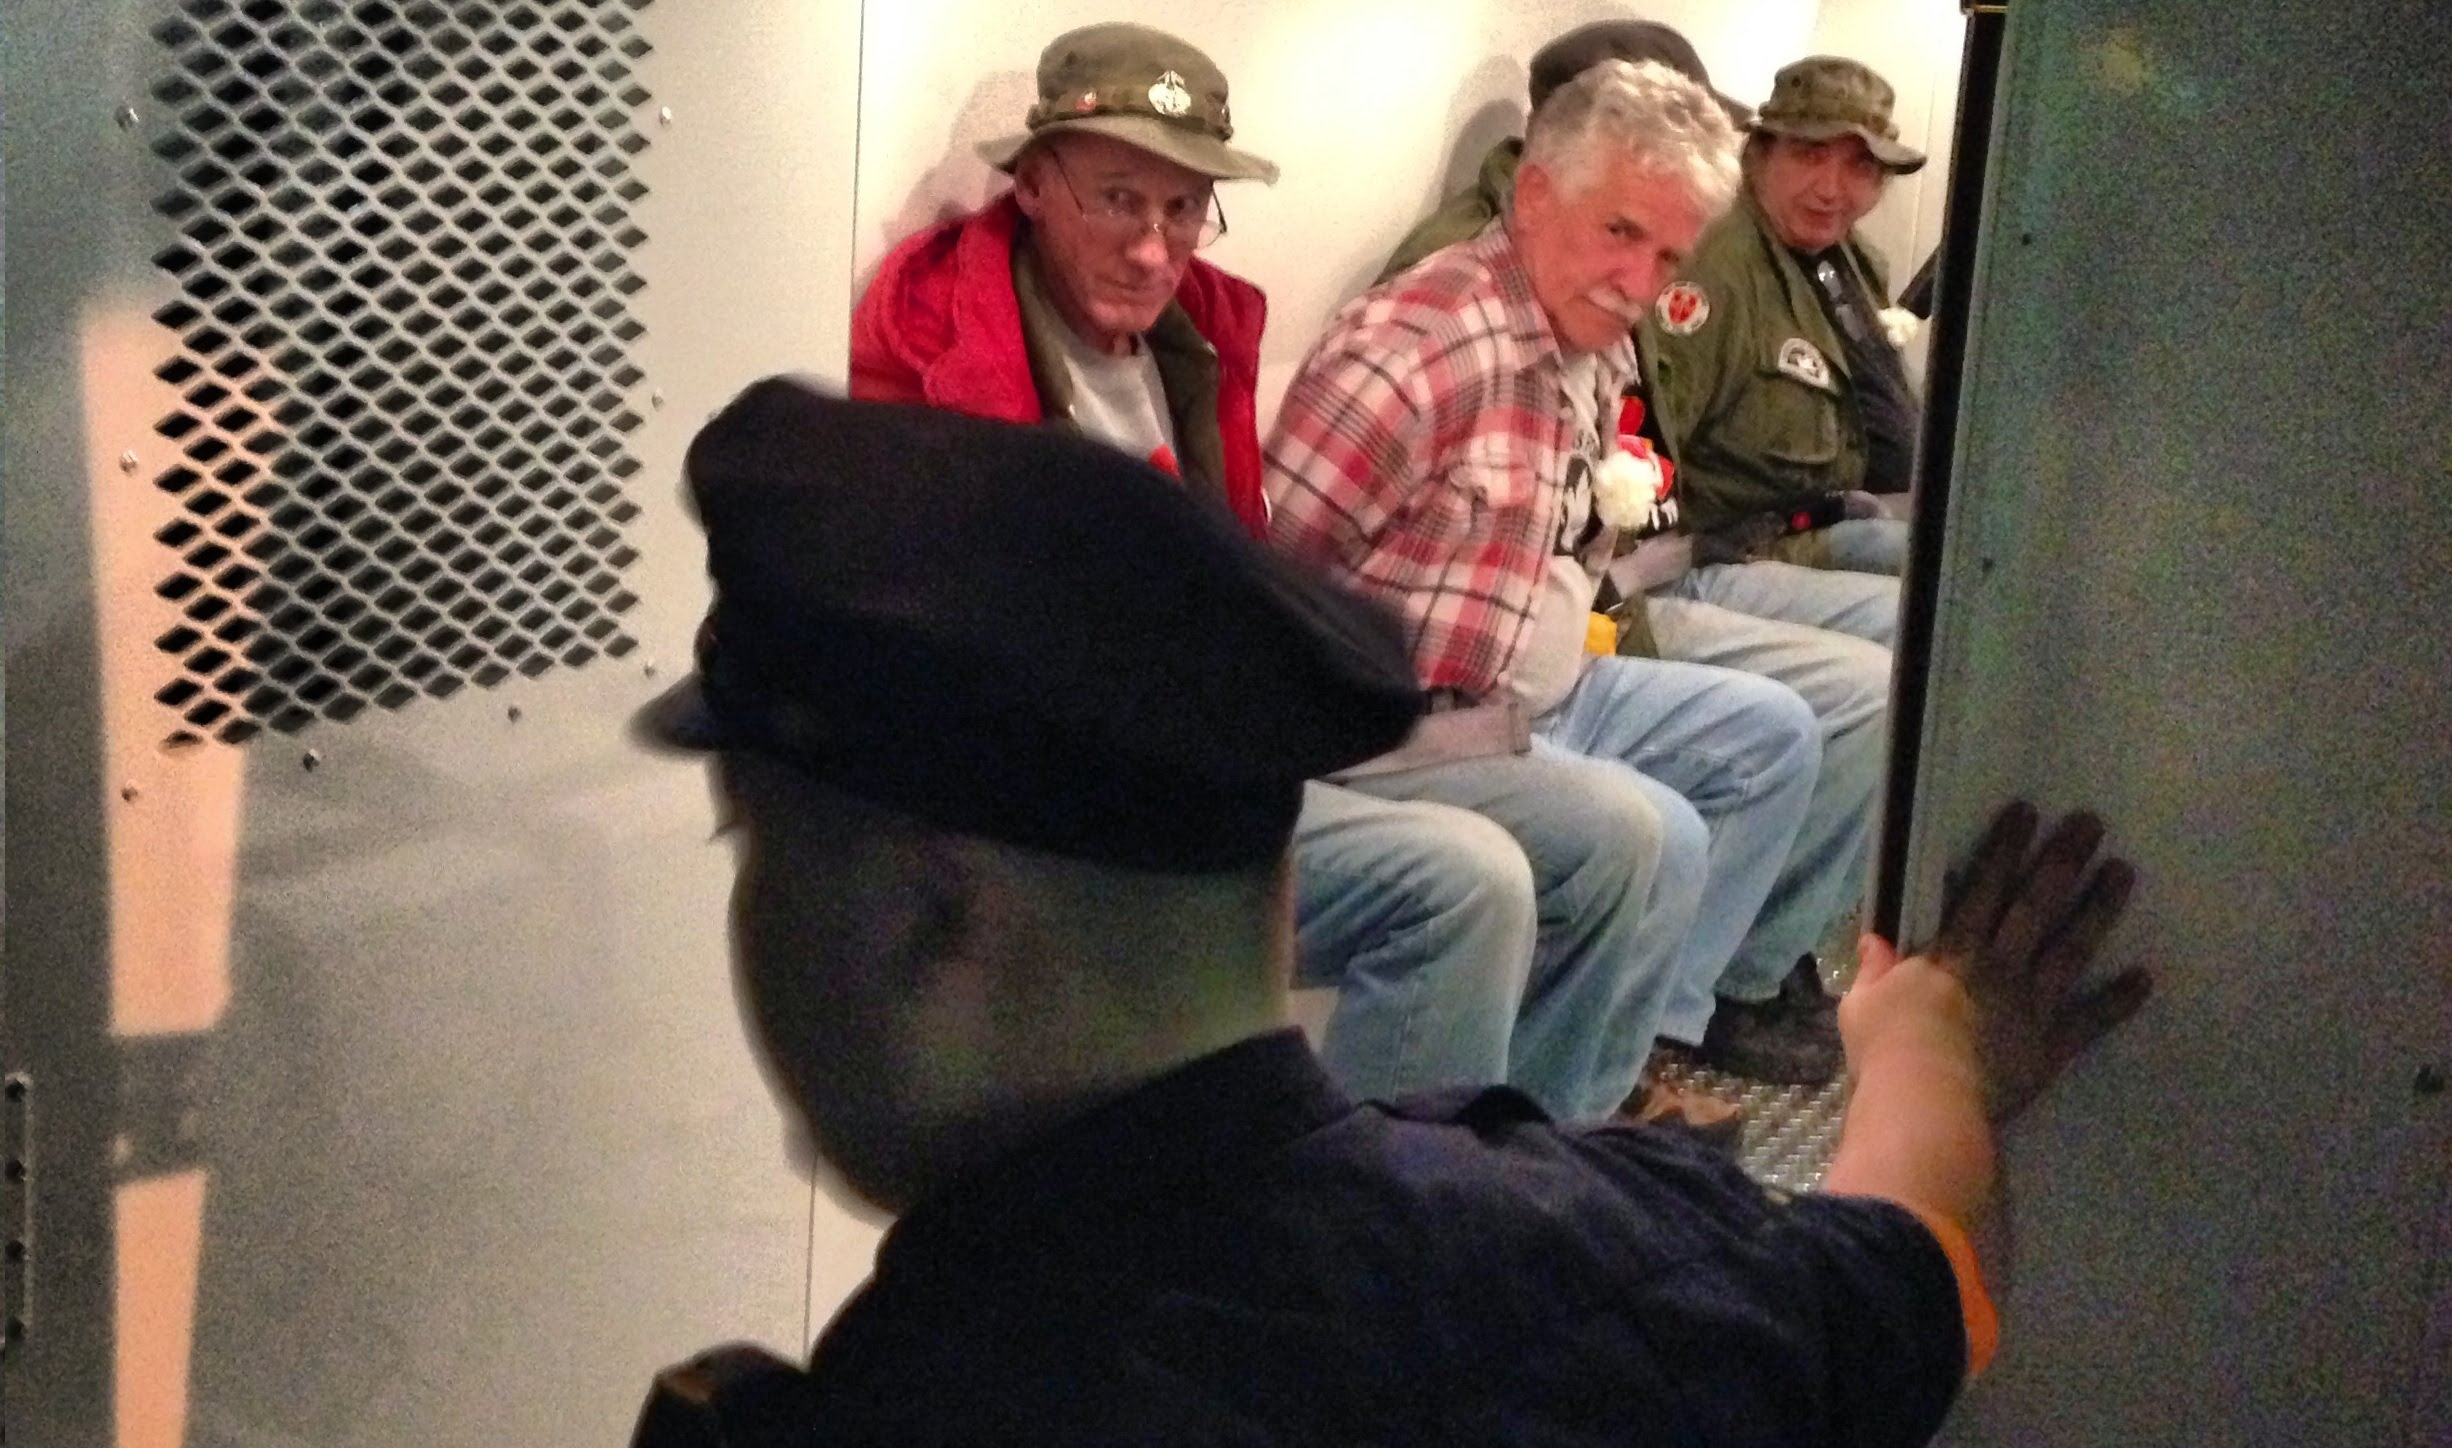 Veterans Arrested at Vietnam Memorial During their Vigil for Fallen Comrades